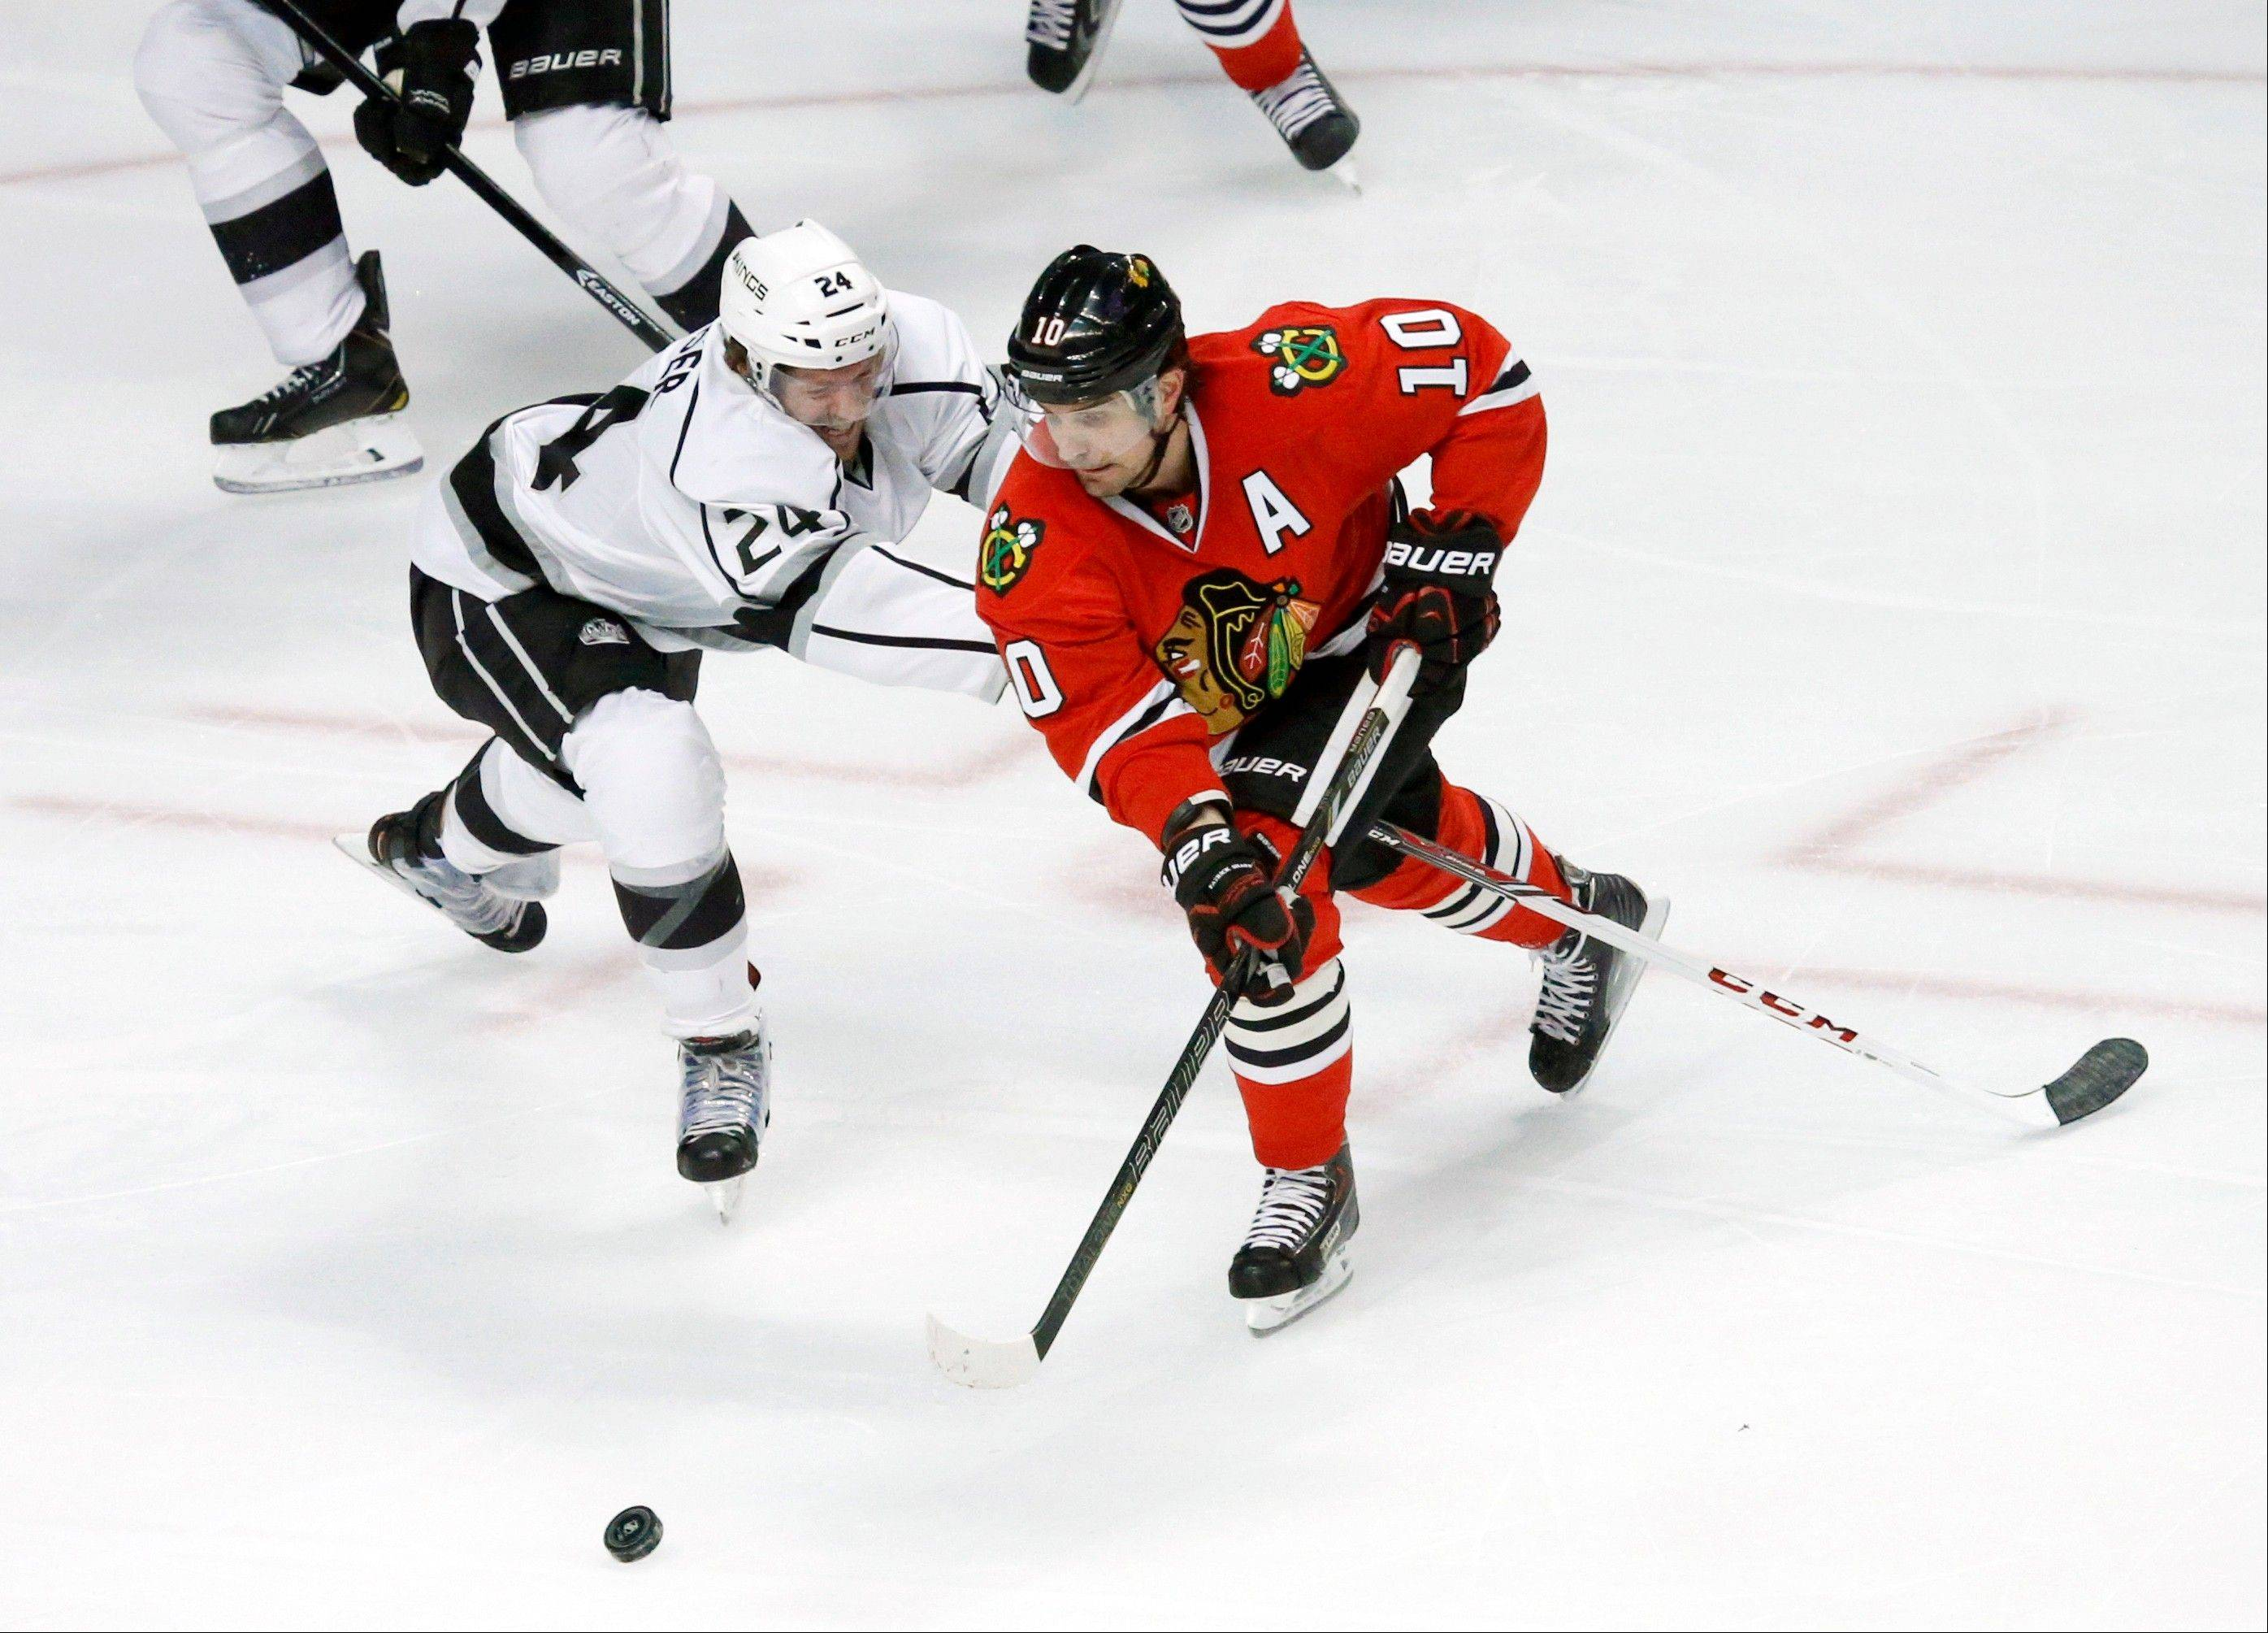 Patrick Sharp is a consistently reliable leader on a star-studded Blackhawks roster that is playing at a historic pace.